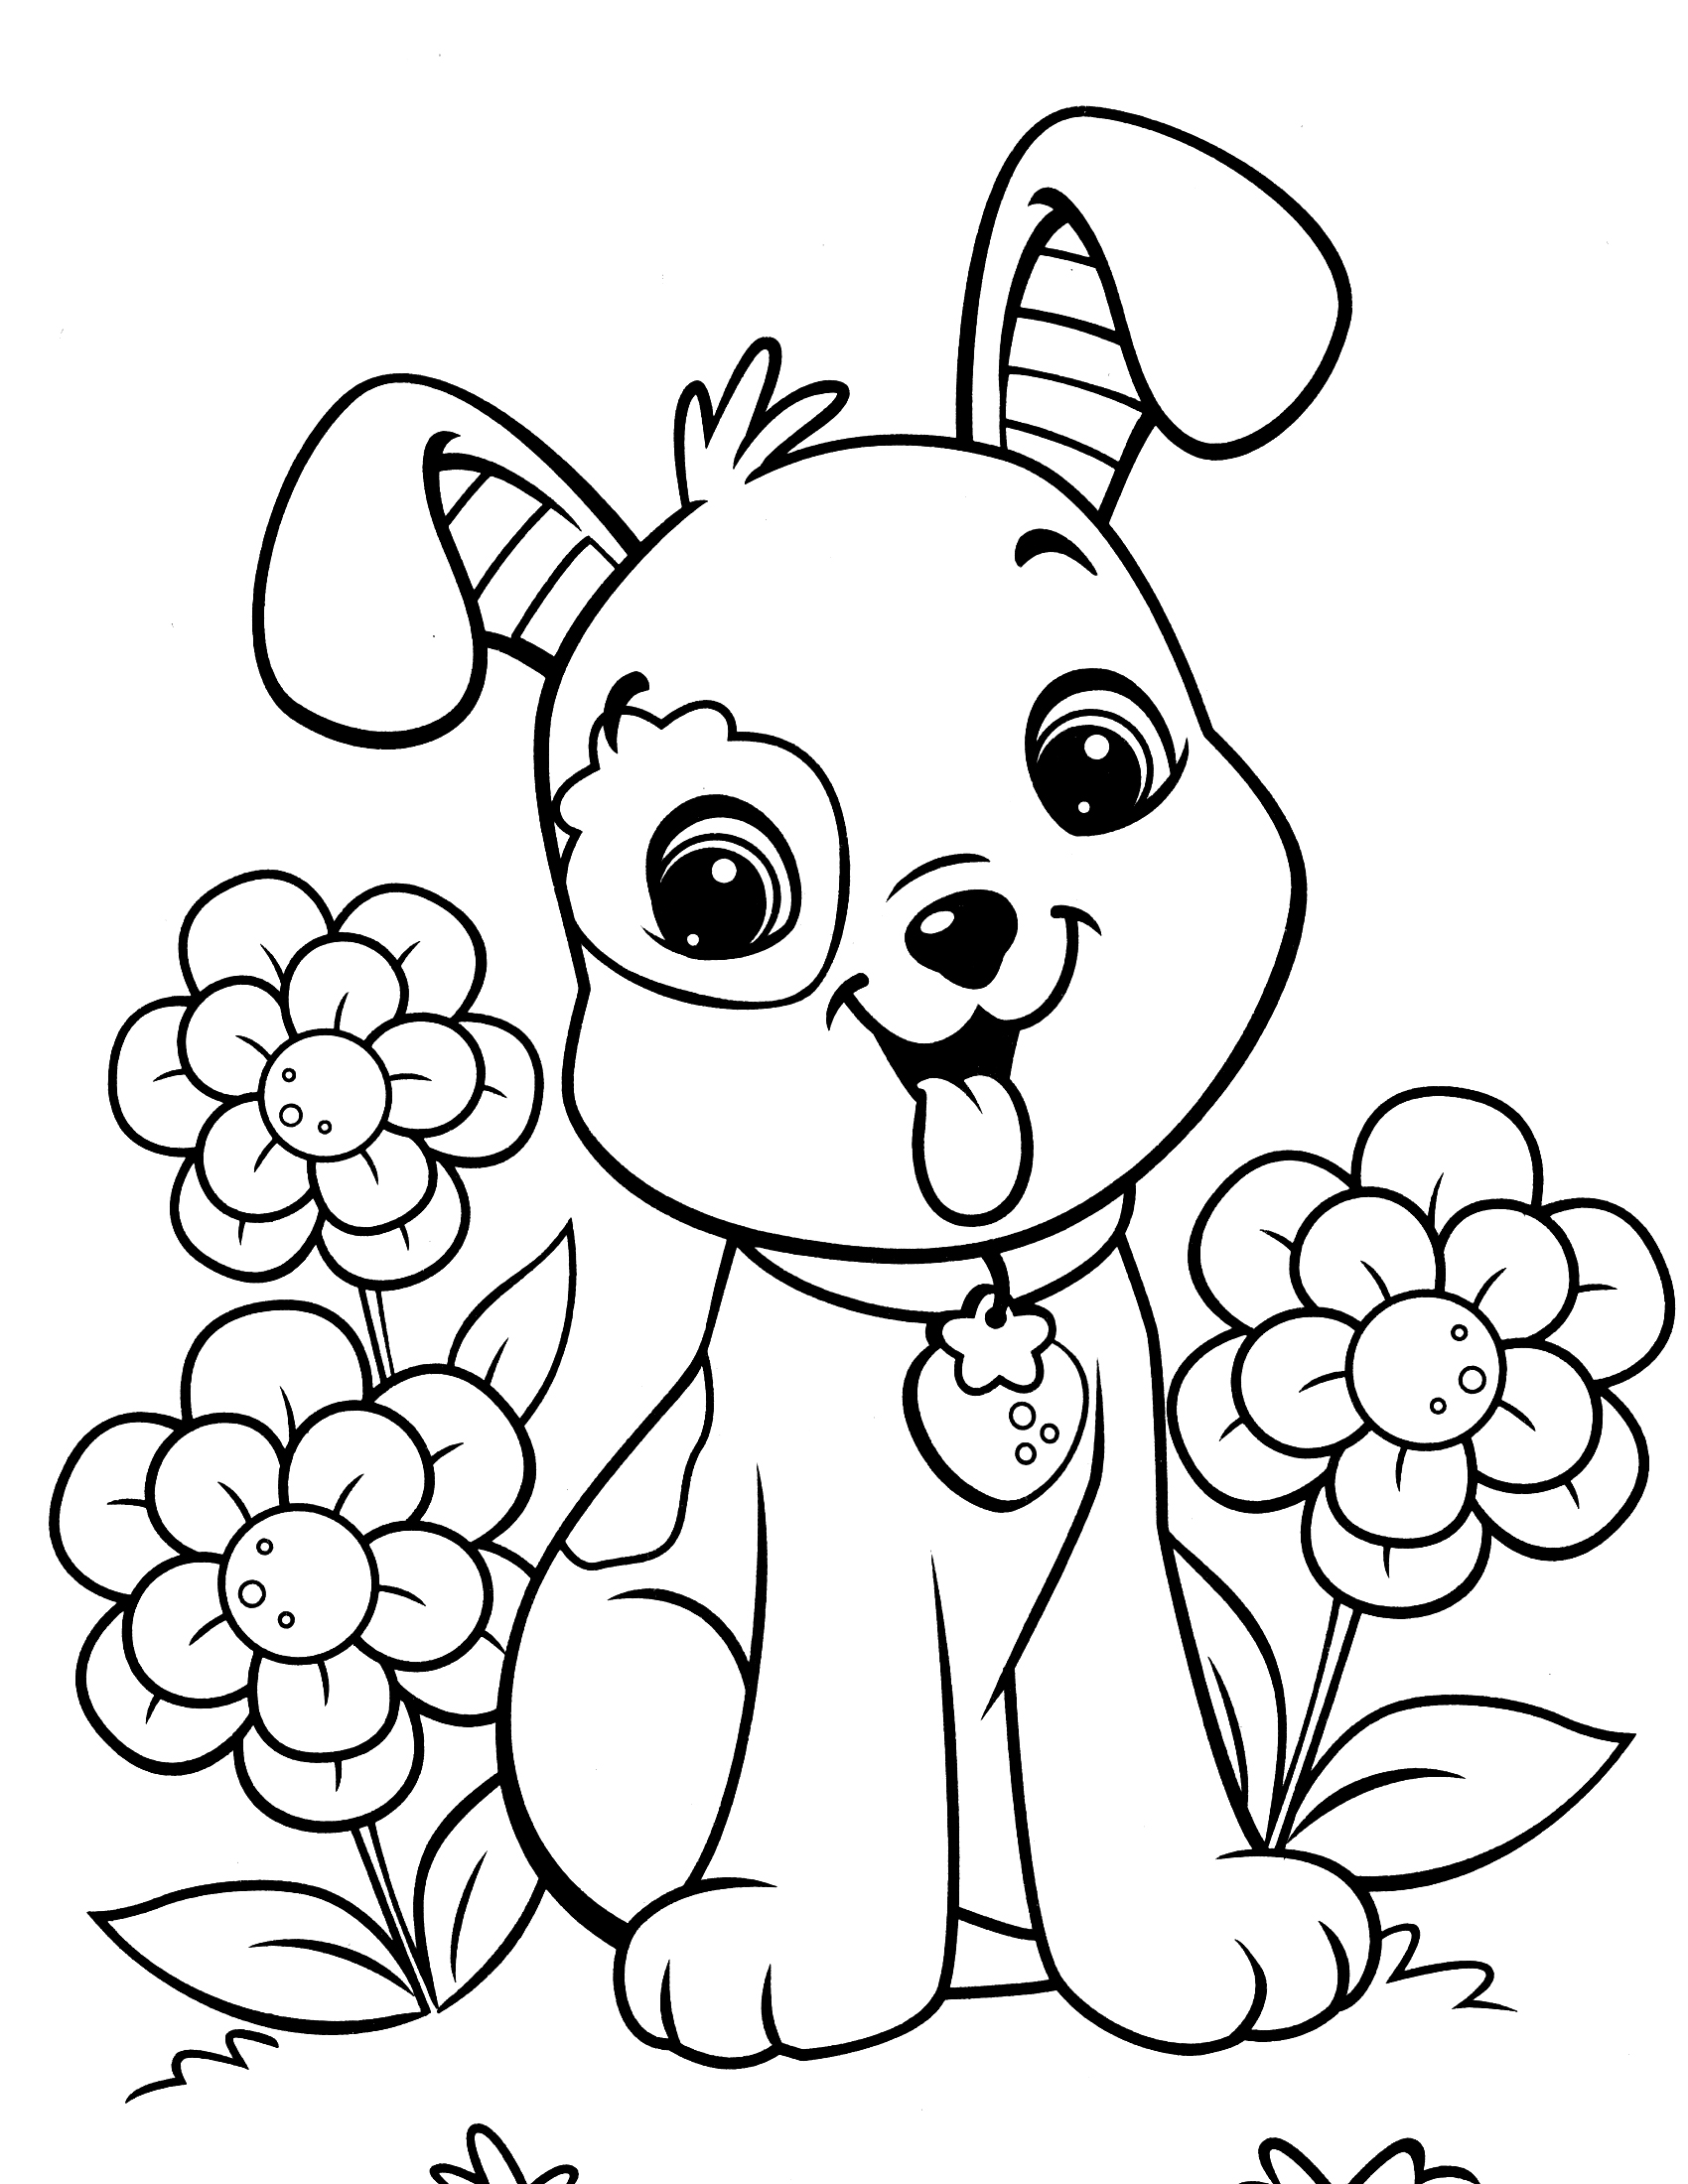 coloring book pages dogs - photo#47